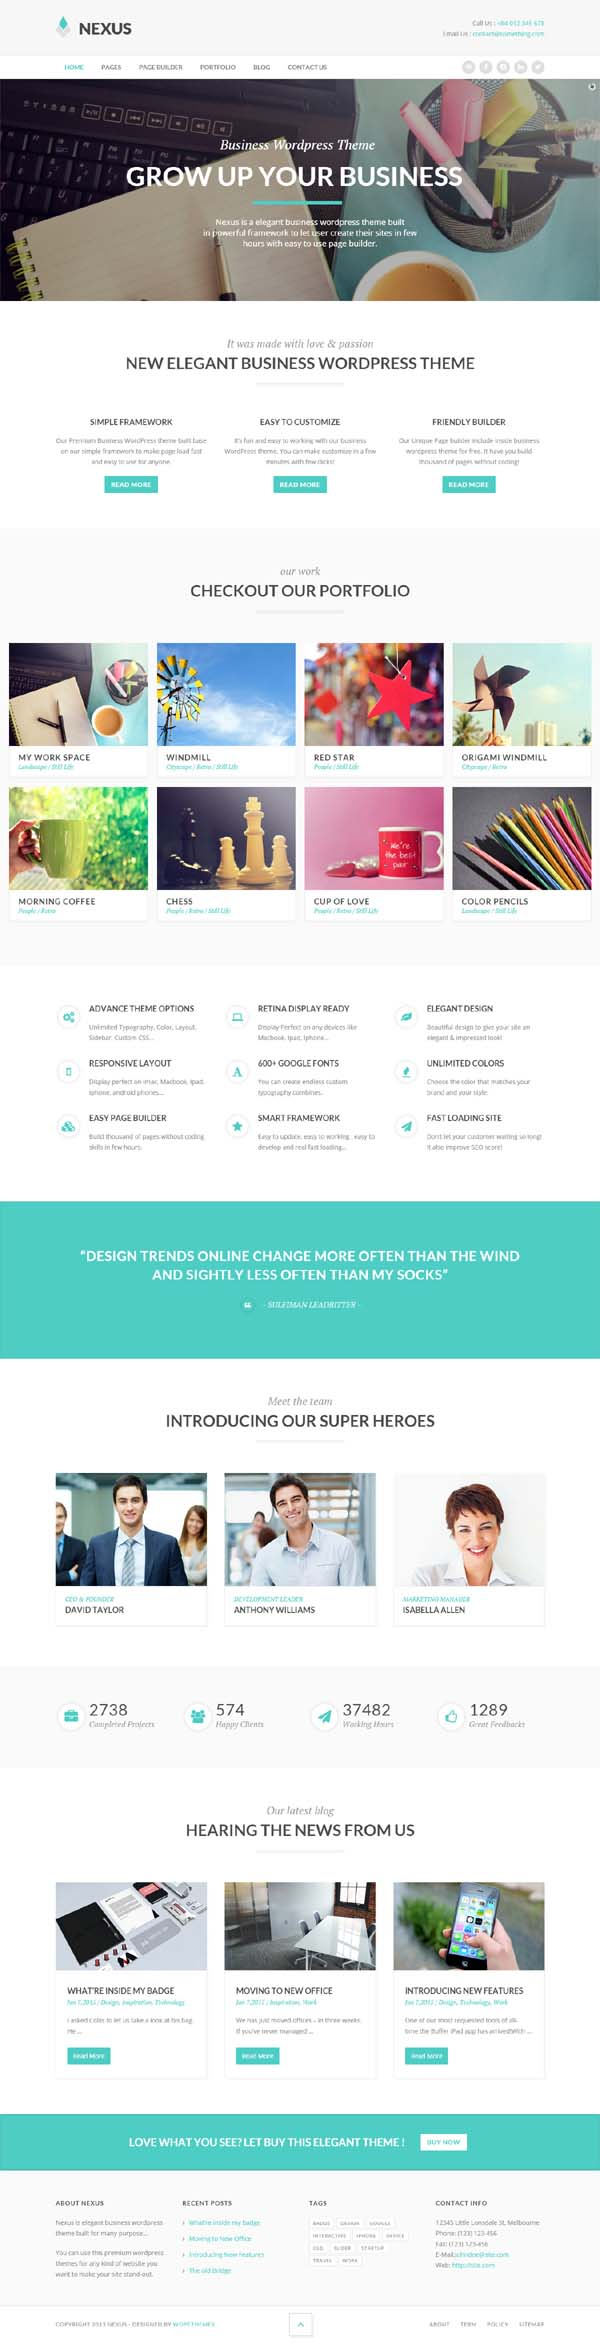 Nexus – Elegant Business WordPress Theme